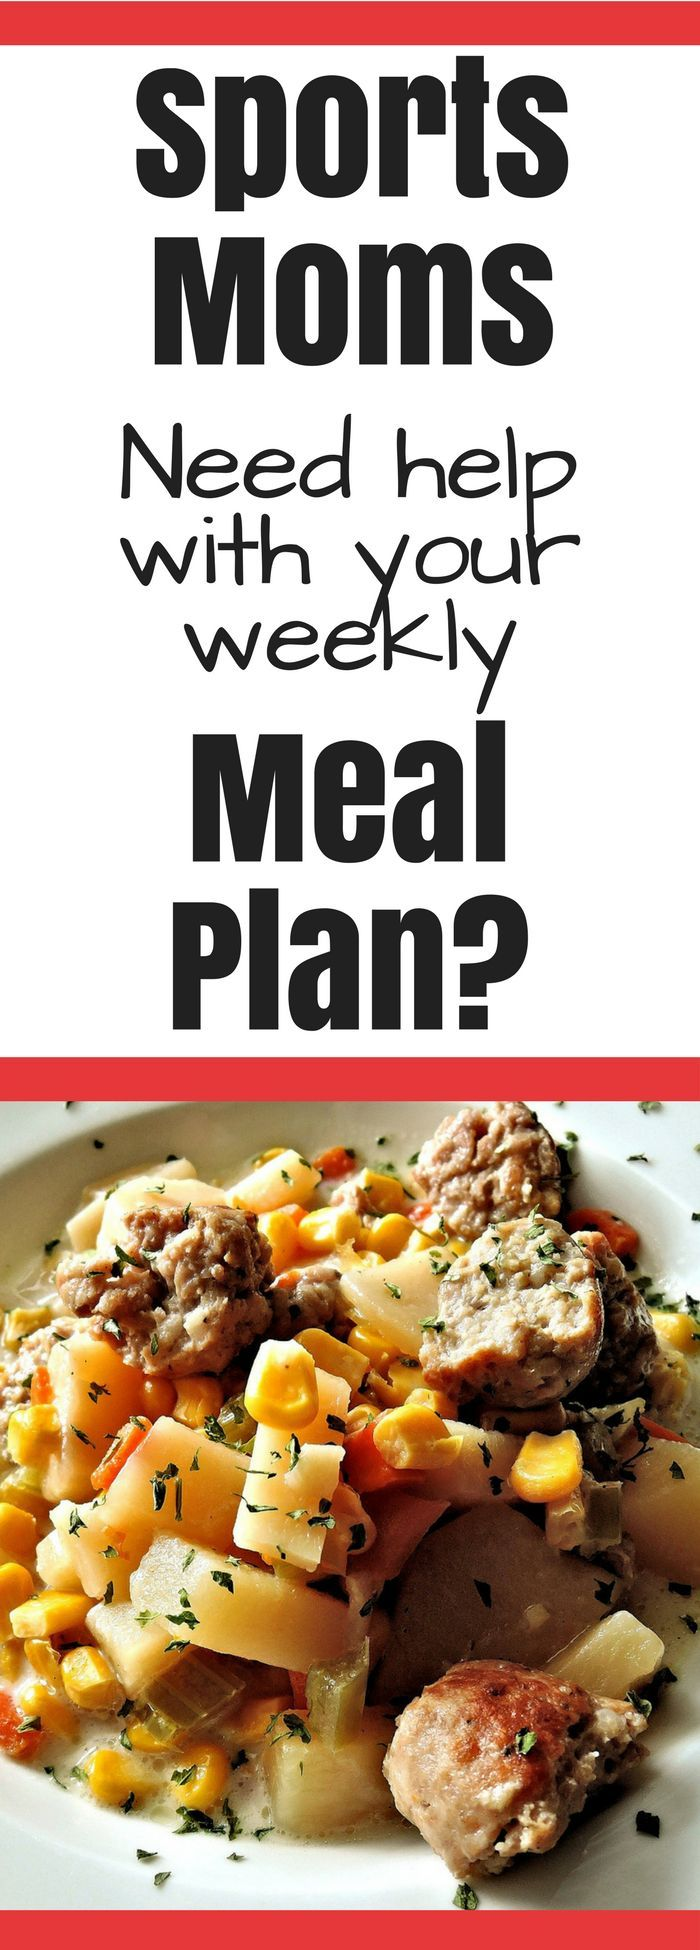 Sports Moms - do you need help with your weekly meal plan? We all need a little help with meal planning on those busy nights running from practice to game and back home and trying to fit in homework and dinner prep at the same time. Take a little pressure off yourself and use these pre-made meal plans sent right to your inbox every week! These meal plans include everything from the recipes to the list of ingredients. Your family will love them and thank you! #afflinks